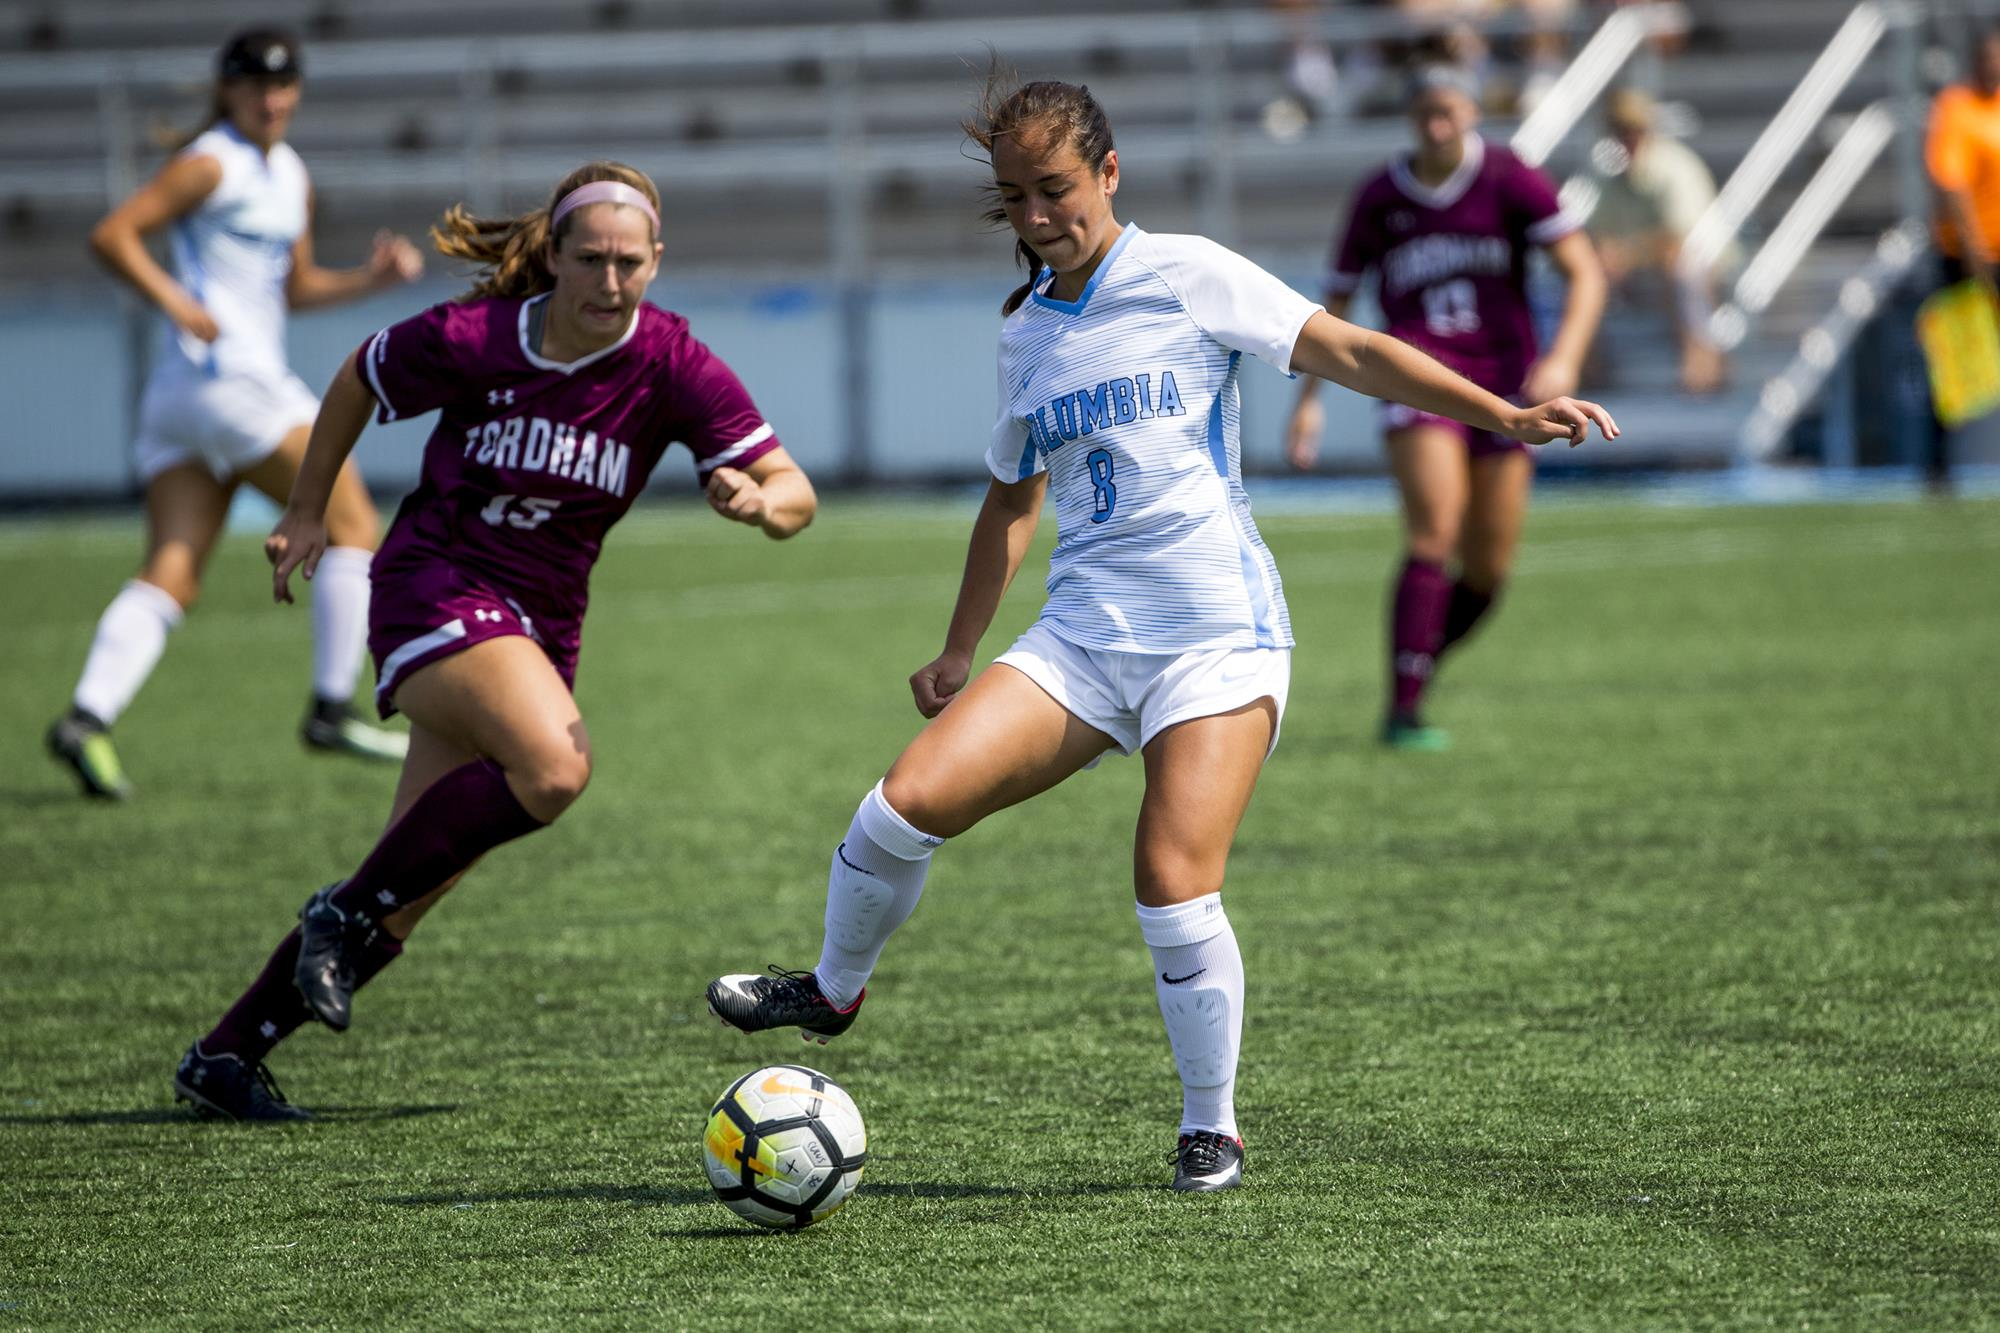 Gracie Wall - Women's Soccer - Columbia University Athletics